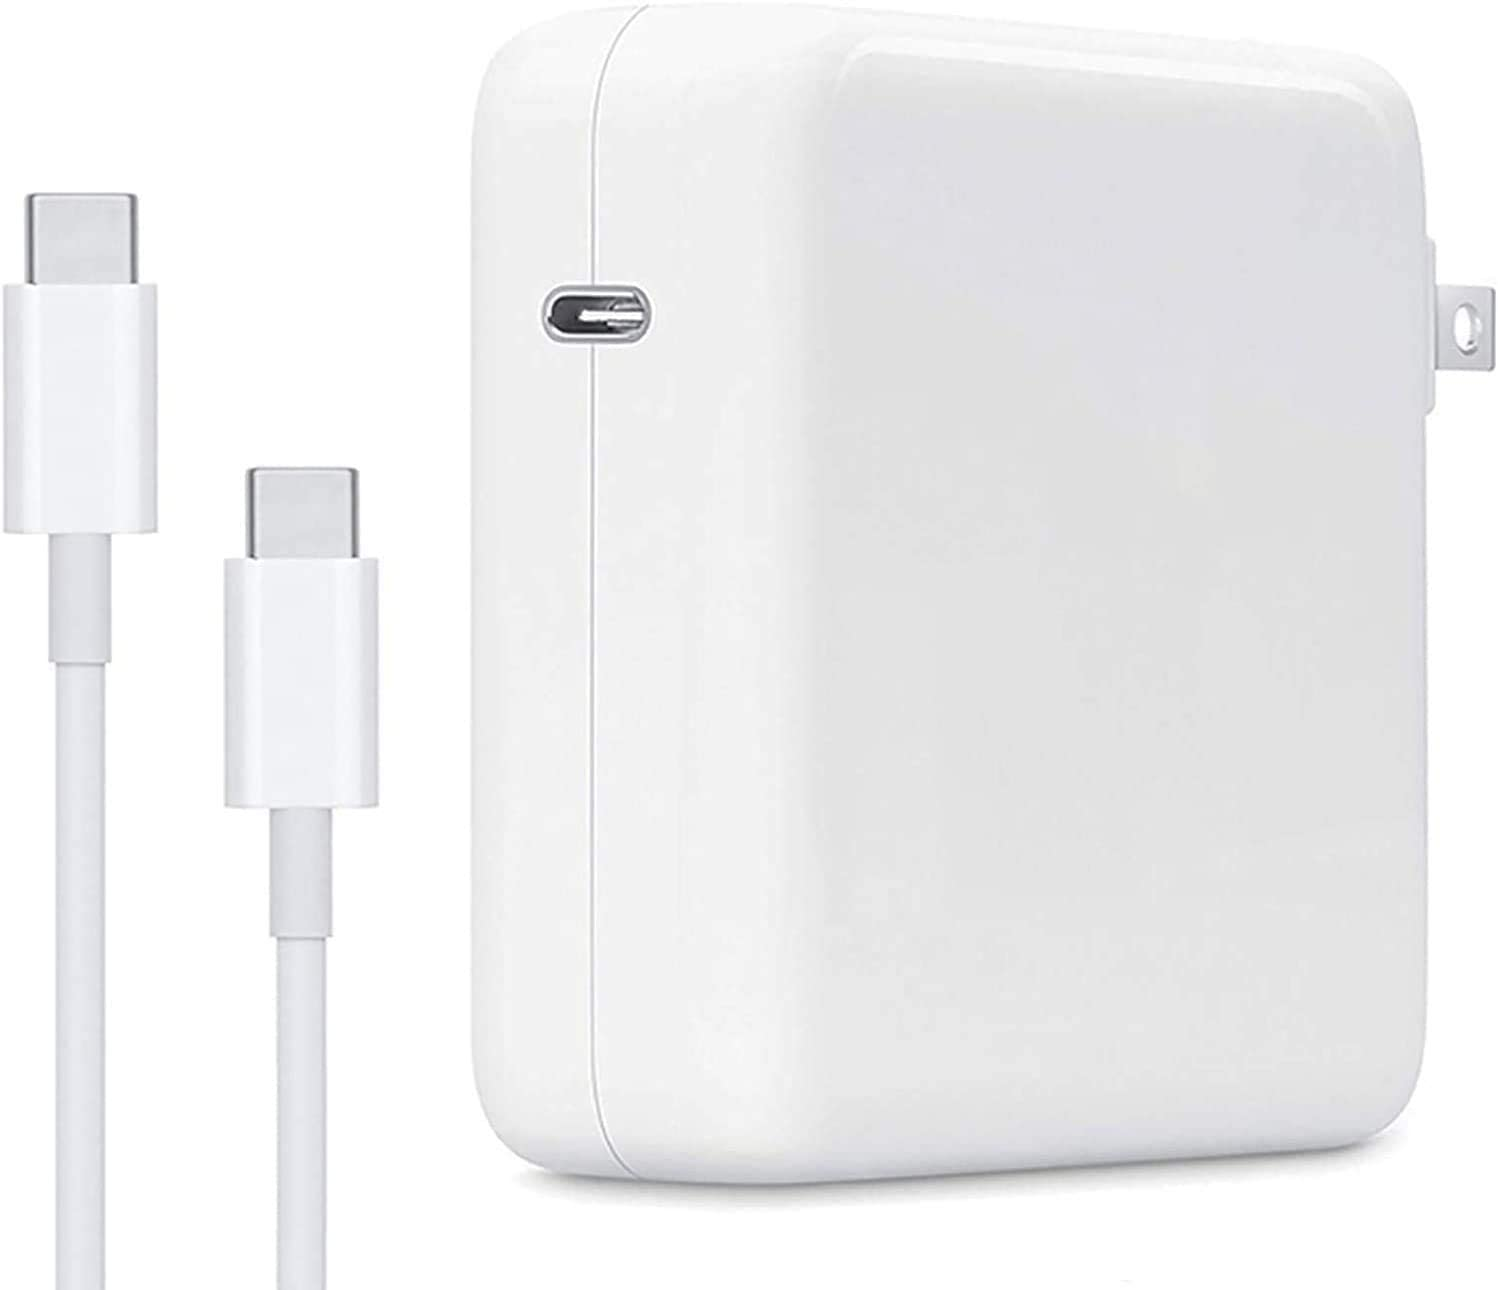 Mac Book Pro Charger, 61W USB C Charger Power Adapter with USB C Cable for Mac Book Pro 15, 13 Inch, New Mac Book Air 13 Inch